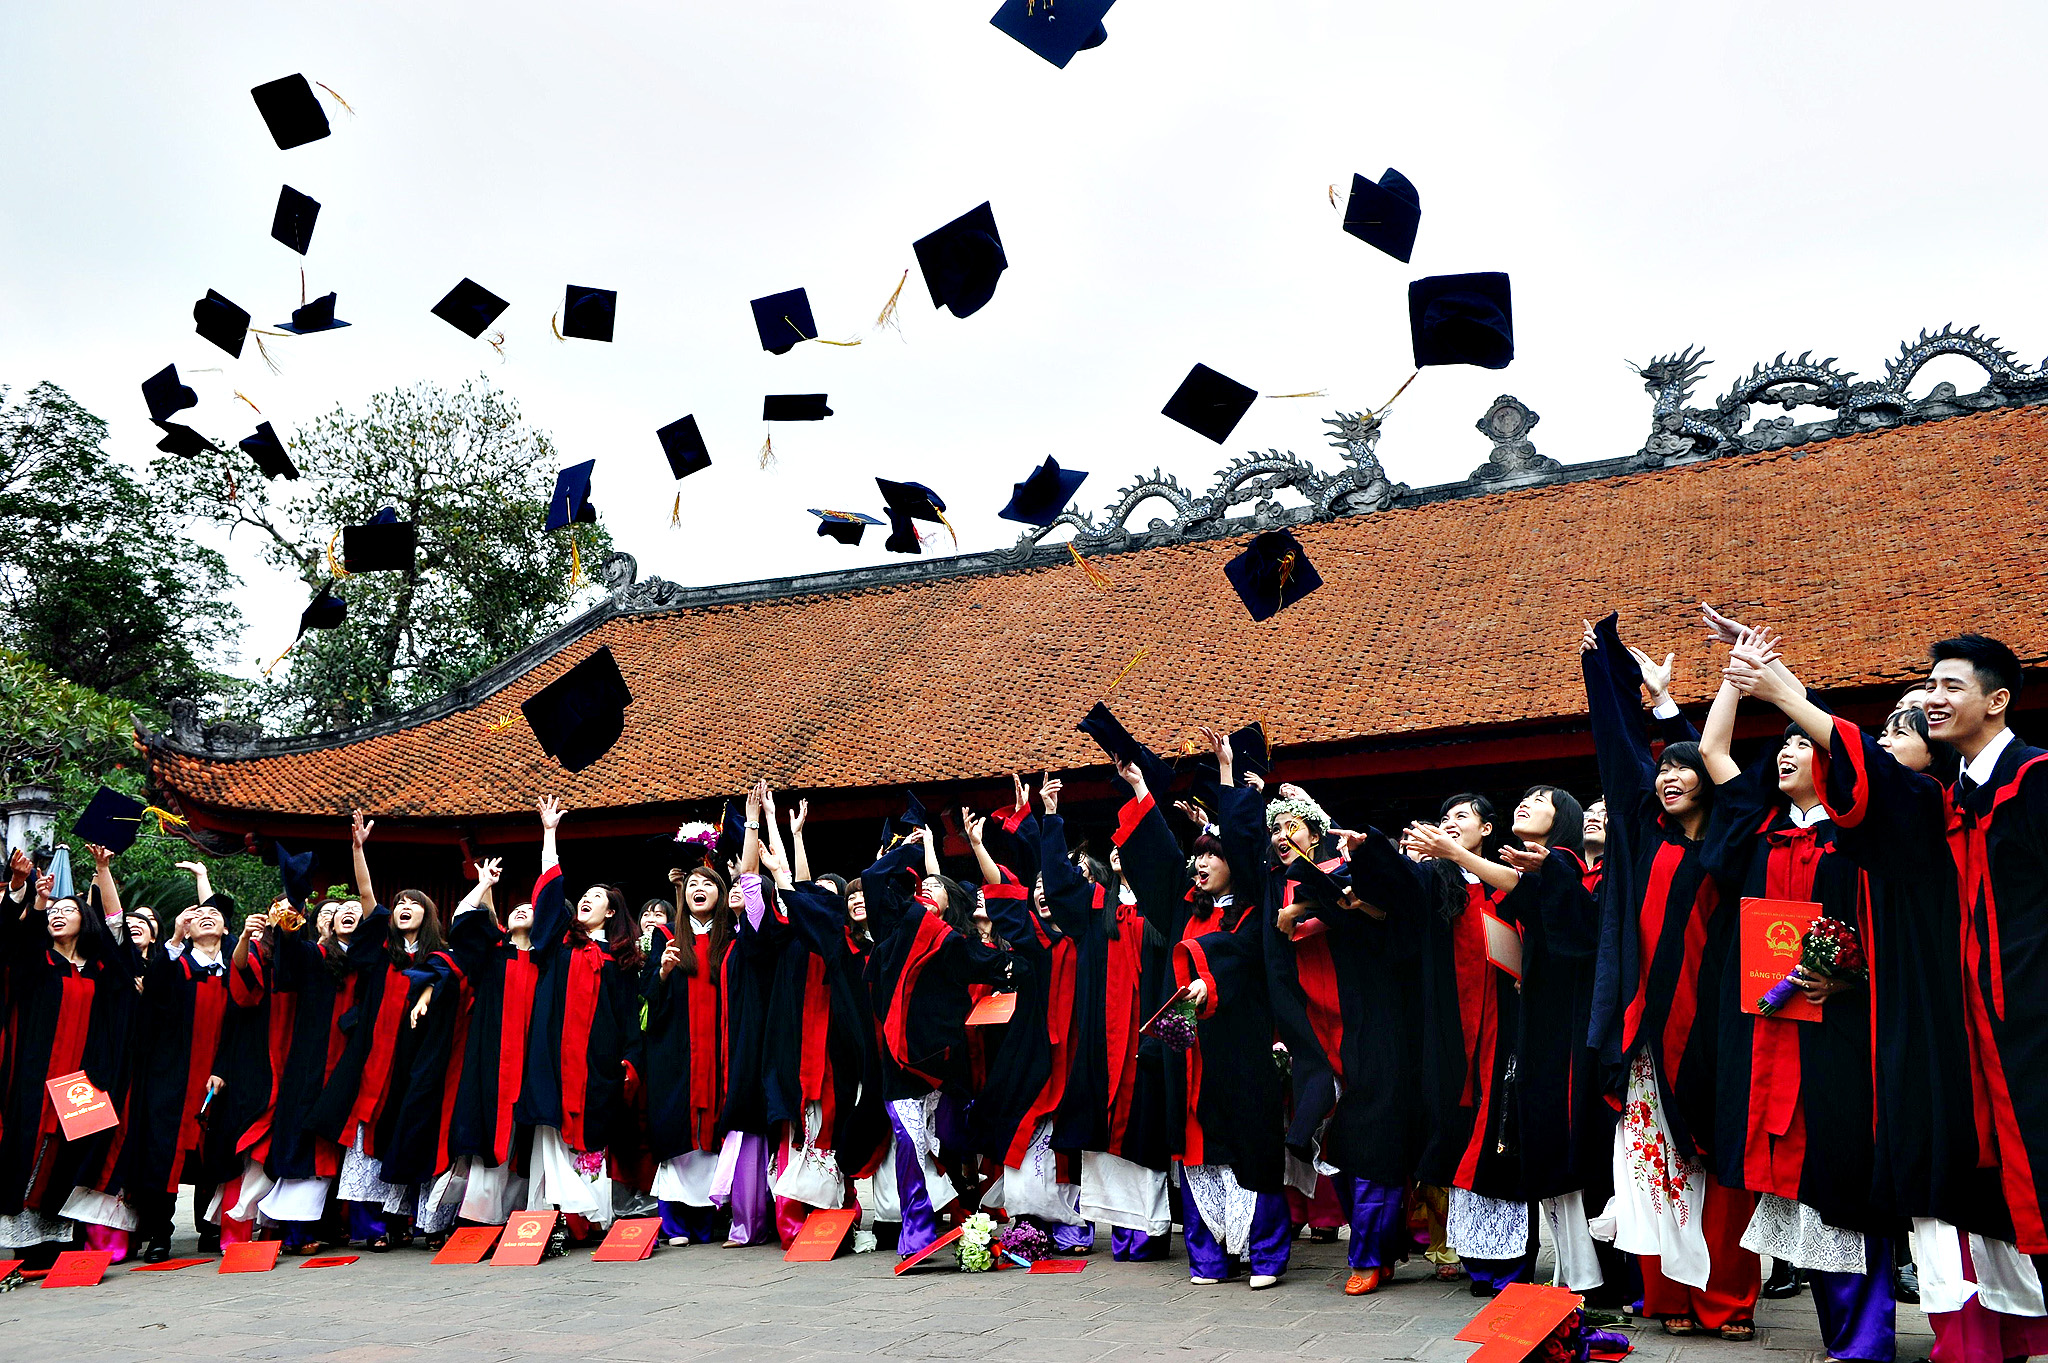 Students from a local college celebrate their graduation at the Temple of Literature in Hanoi on Tuesday. The temple is where Vietnam's oldest university was founded in the 11th century under the Ly Dynasty, and is popular with modern-day students who begin to flock in high school, hoping to boost their chances in annual nationwide examinations.